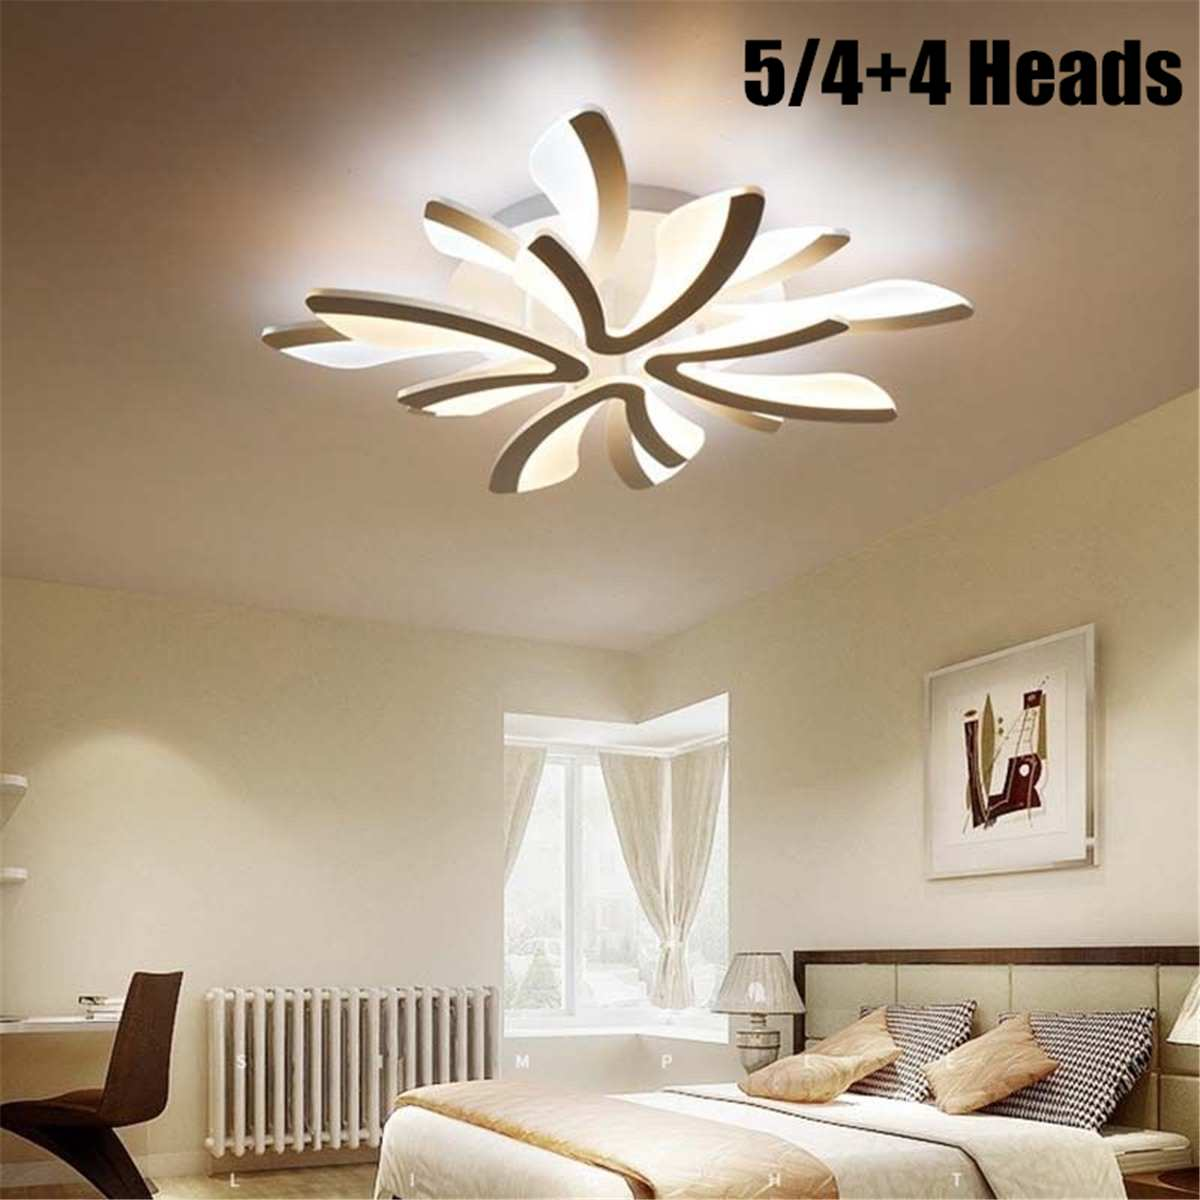 8 Heads Acrylic Modern LED Ceiling Lights for Living Room Bedroom Dining Room Home Decor Ceiling Lamp Lighting Light Fixtures8 Heads Acrylic Modern LED Ceiling Lights for Living Room Bedroom Dining Room Home Decor Ceiling Lamp Lighting Light Fixtures